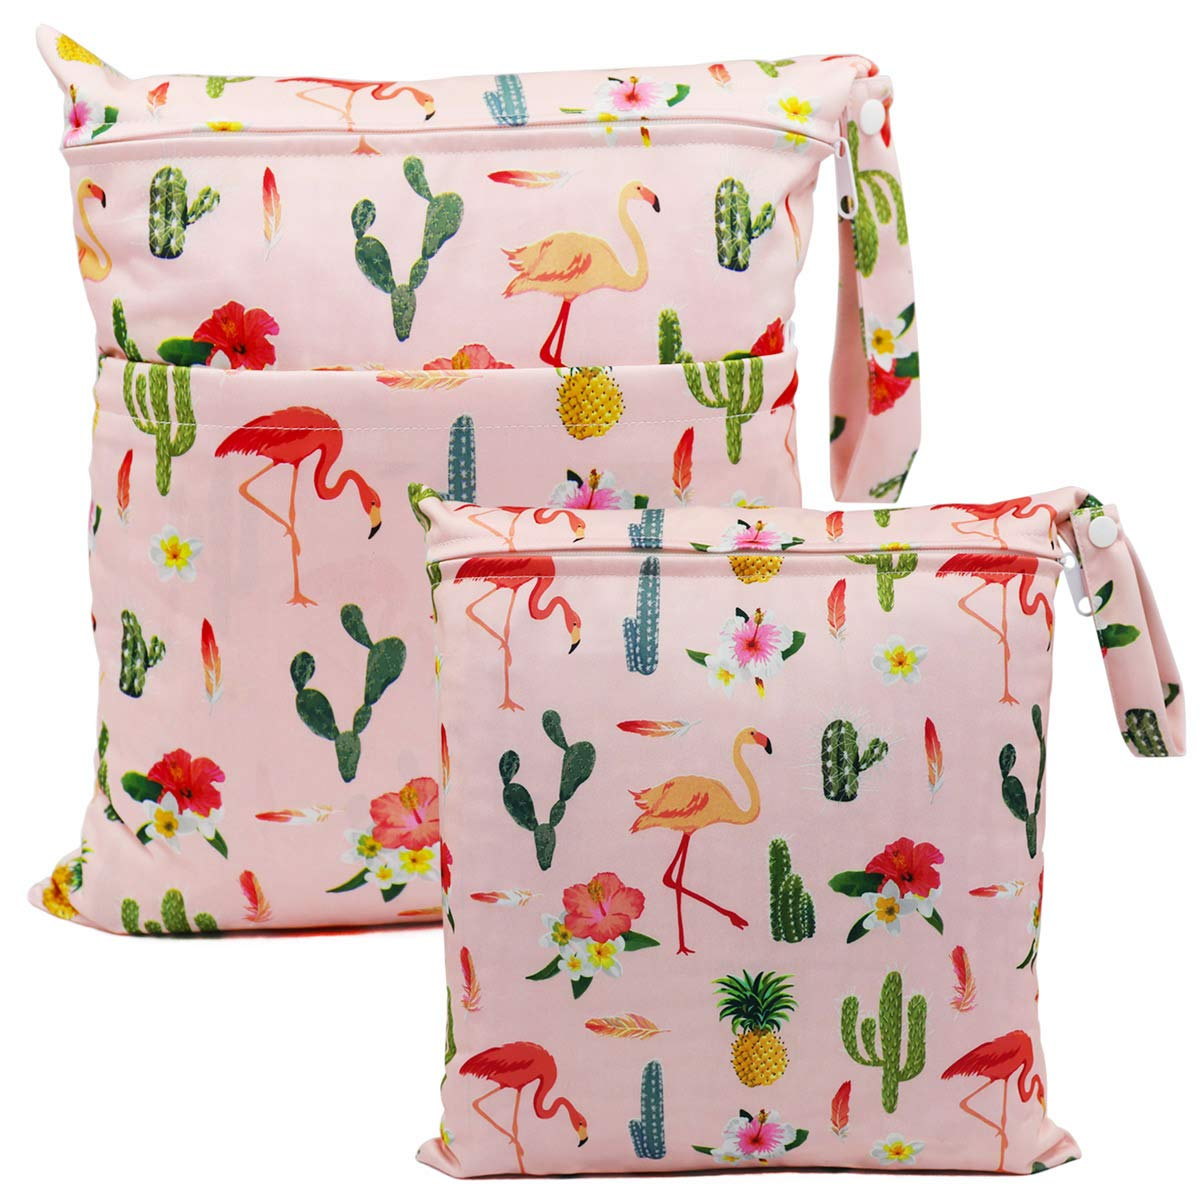 Waterproof Washable Reusable Zipper Bag ViVidLife Wet Bag 2 PCS Wet Dry Bags for Cloth Diapers Nappy Daycare Organiser Storage Bags